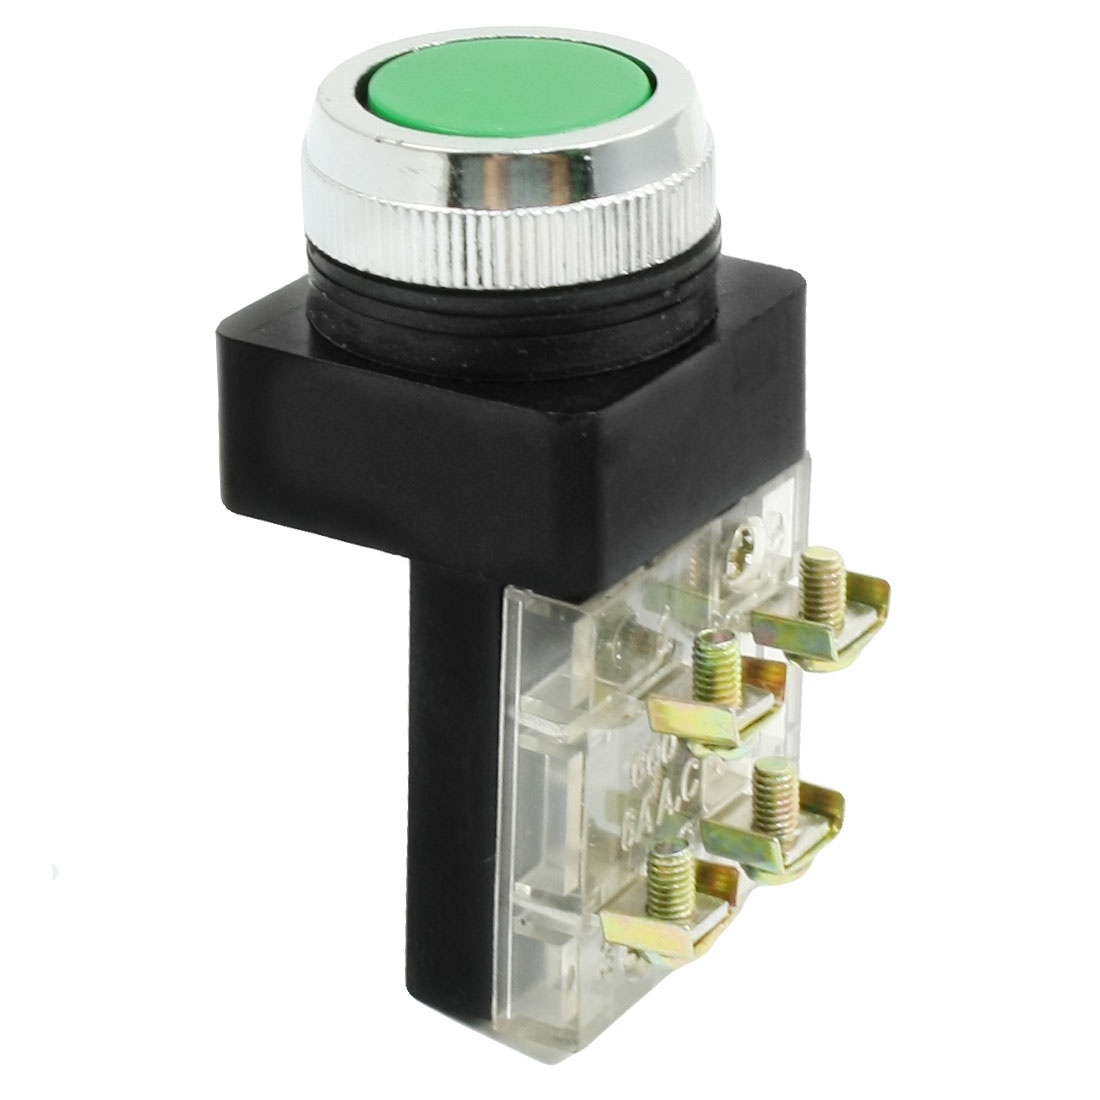 AC 250V 6A DPST Momentary Action Green Flat Cap Push Button Switch